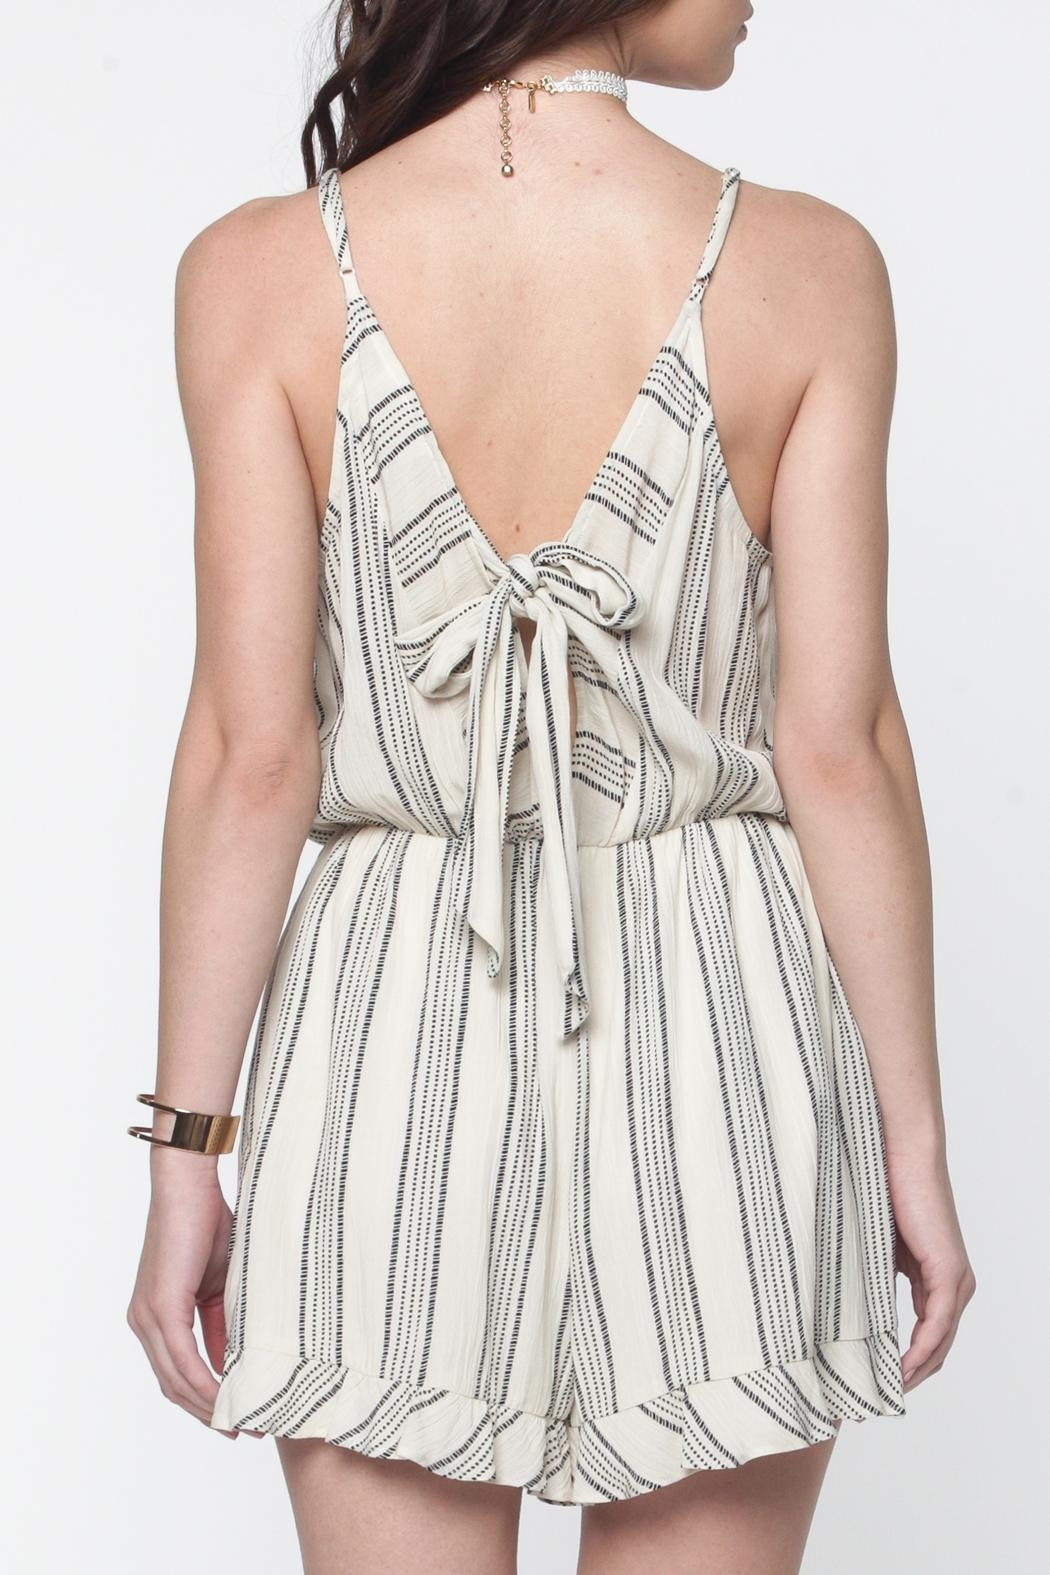 Everly Ivory Striped Romper - Front Full Image